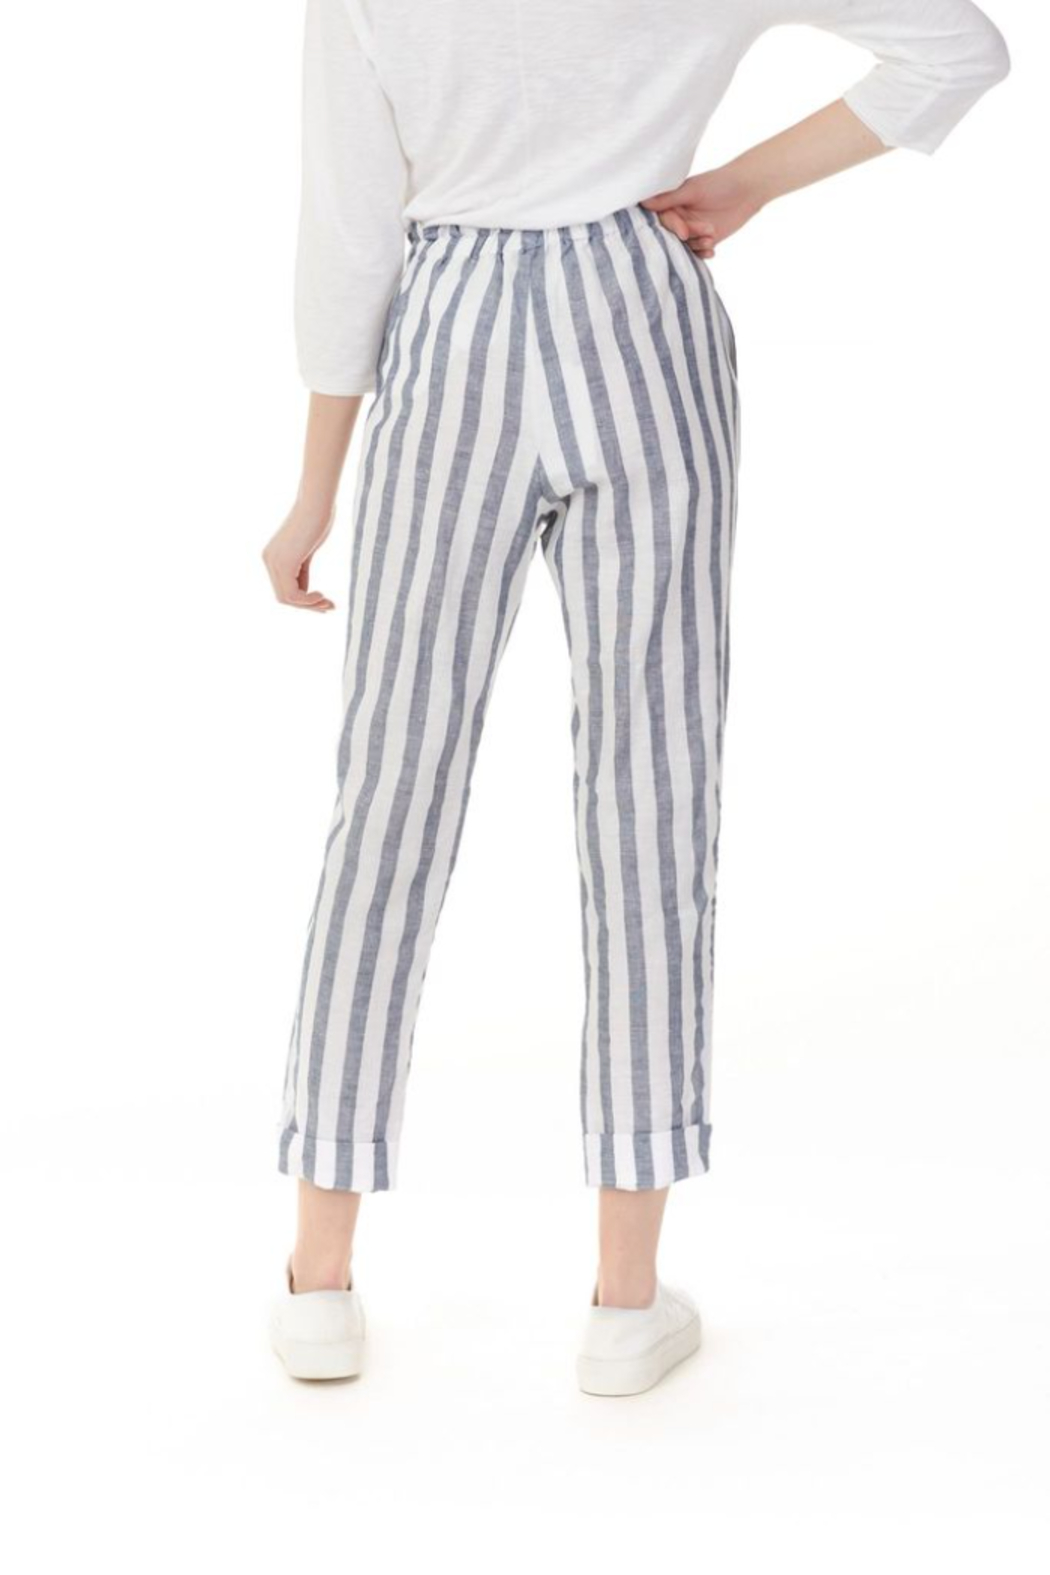 Charlie B Striped Linen Pant - Side Cropped Image